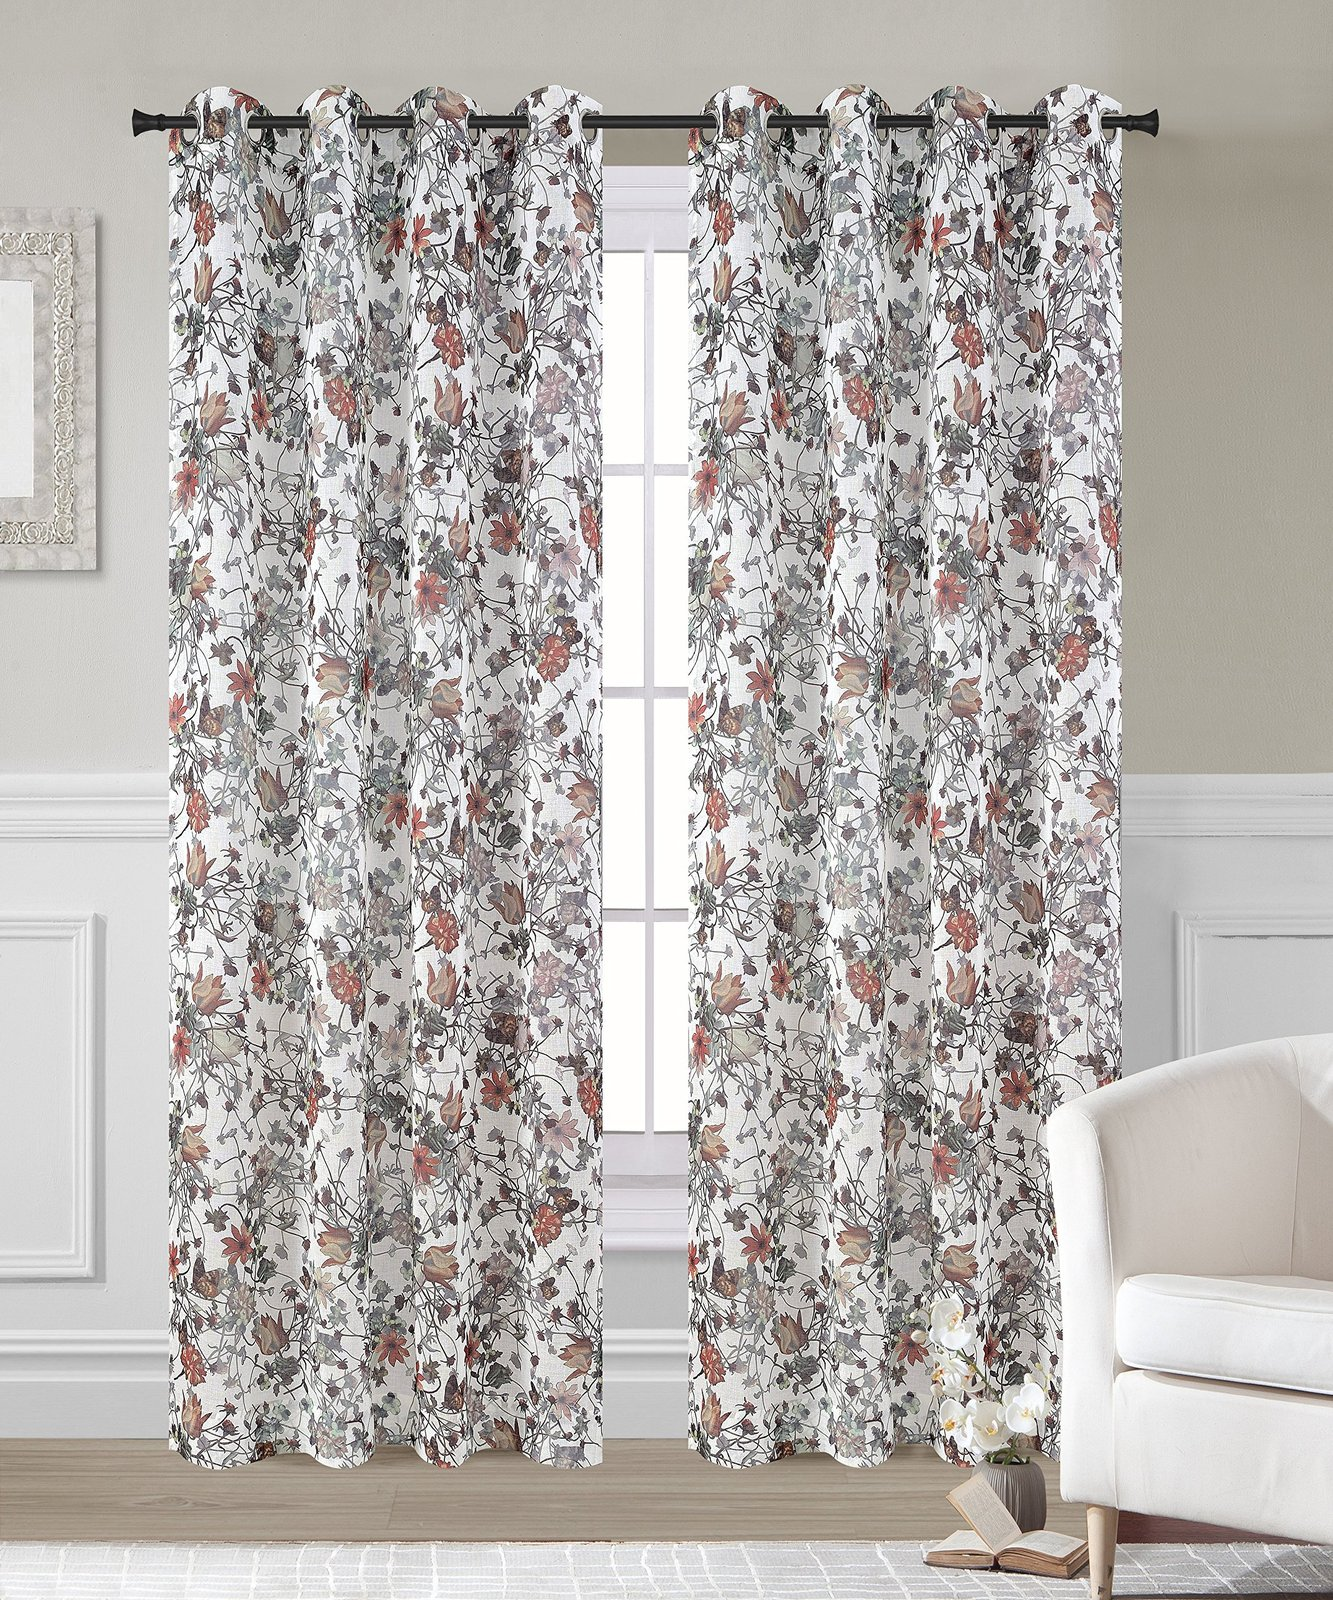 Urbanest 54-inch by 63-inch Set of 2 Faux Linen Sheer Garden Drapery Curtain Pan image 2